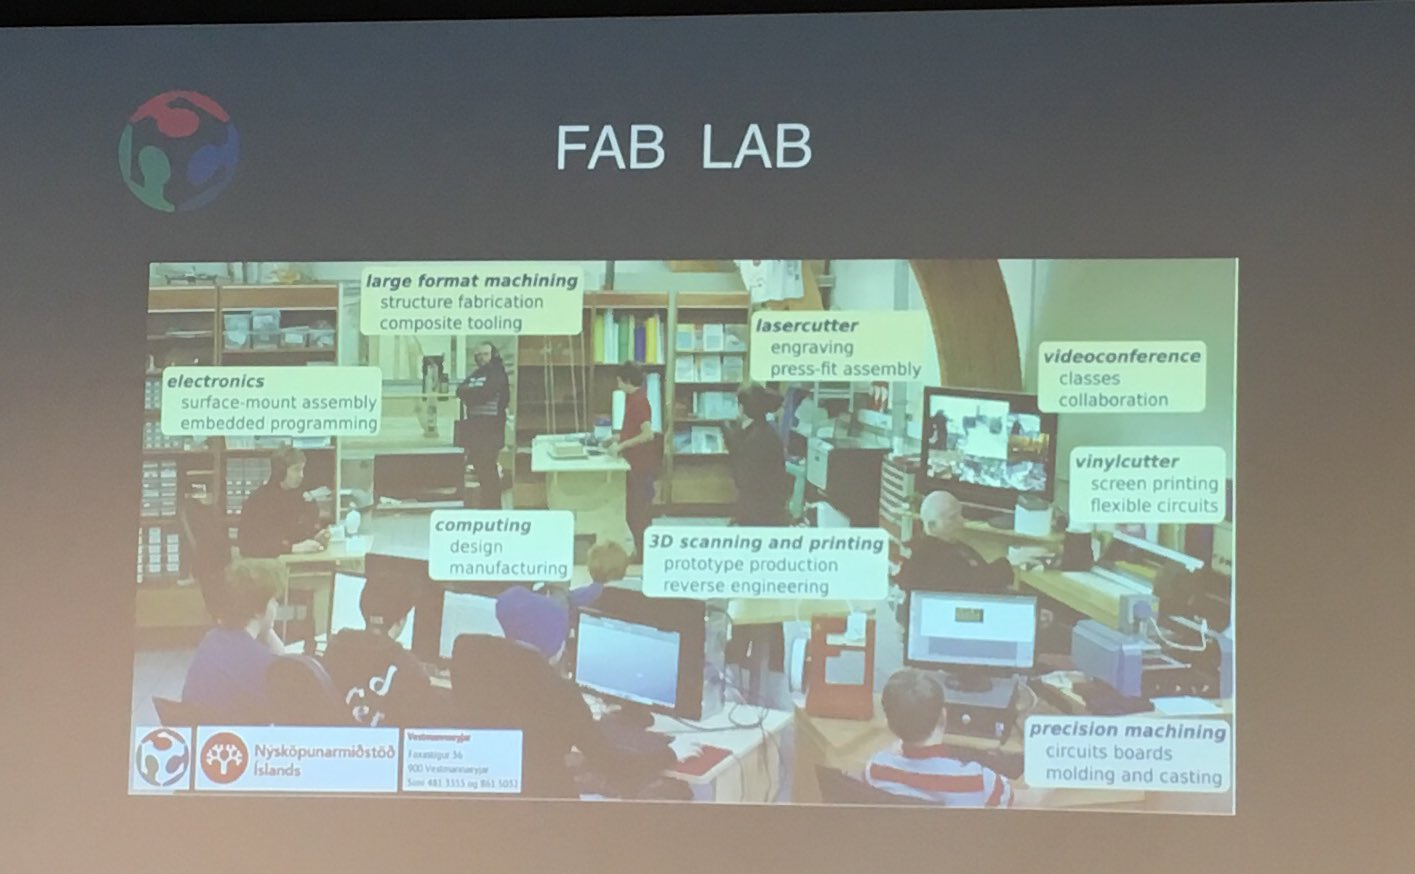 Social engineering is at the heart of makers and fablabs of the world. Inspiring keynote #DigiFabCon by Sherry Lassiter https://t.co/M6GNZO70Vn